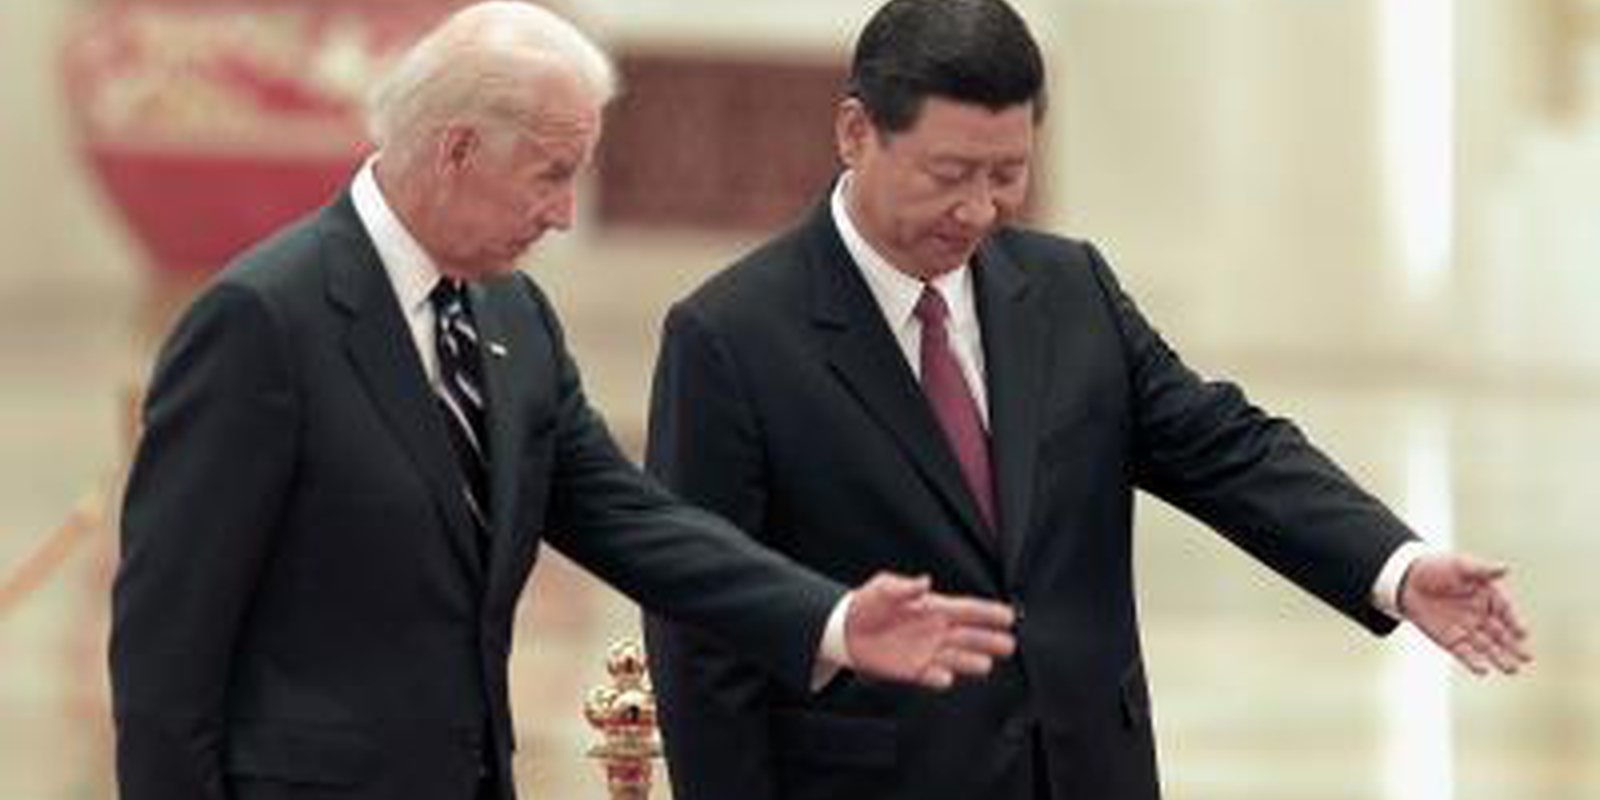 Image — Xi Jinping meets Joe Biden at a welcoming ceremony inside the Great Hall of the People in Beijing, China. Photo by Lintao Zhang/Getty Images.